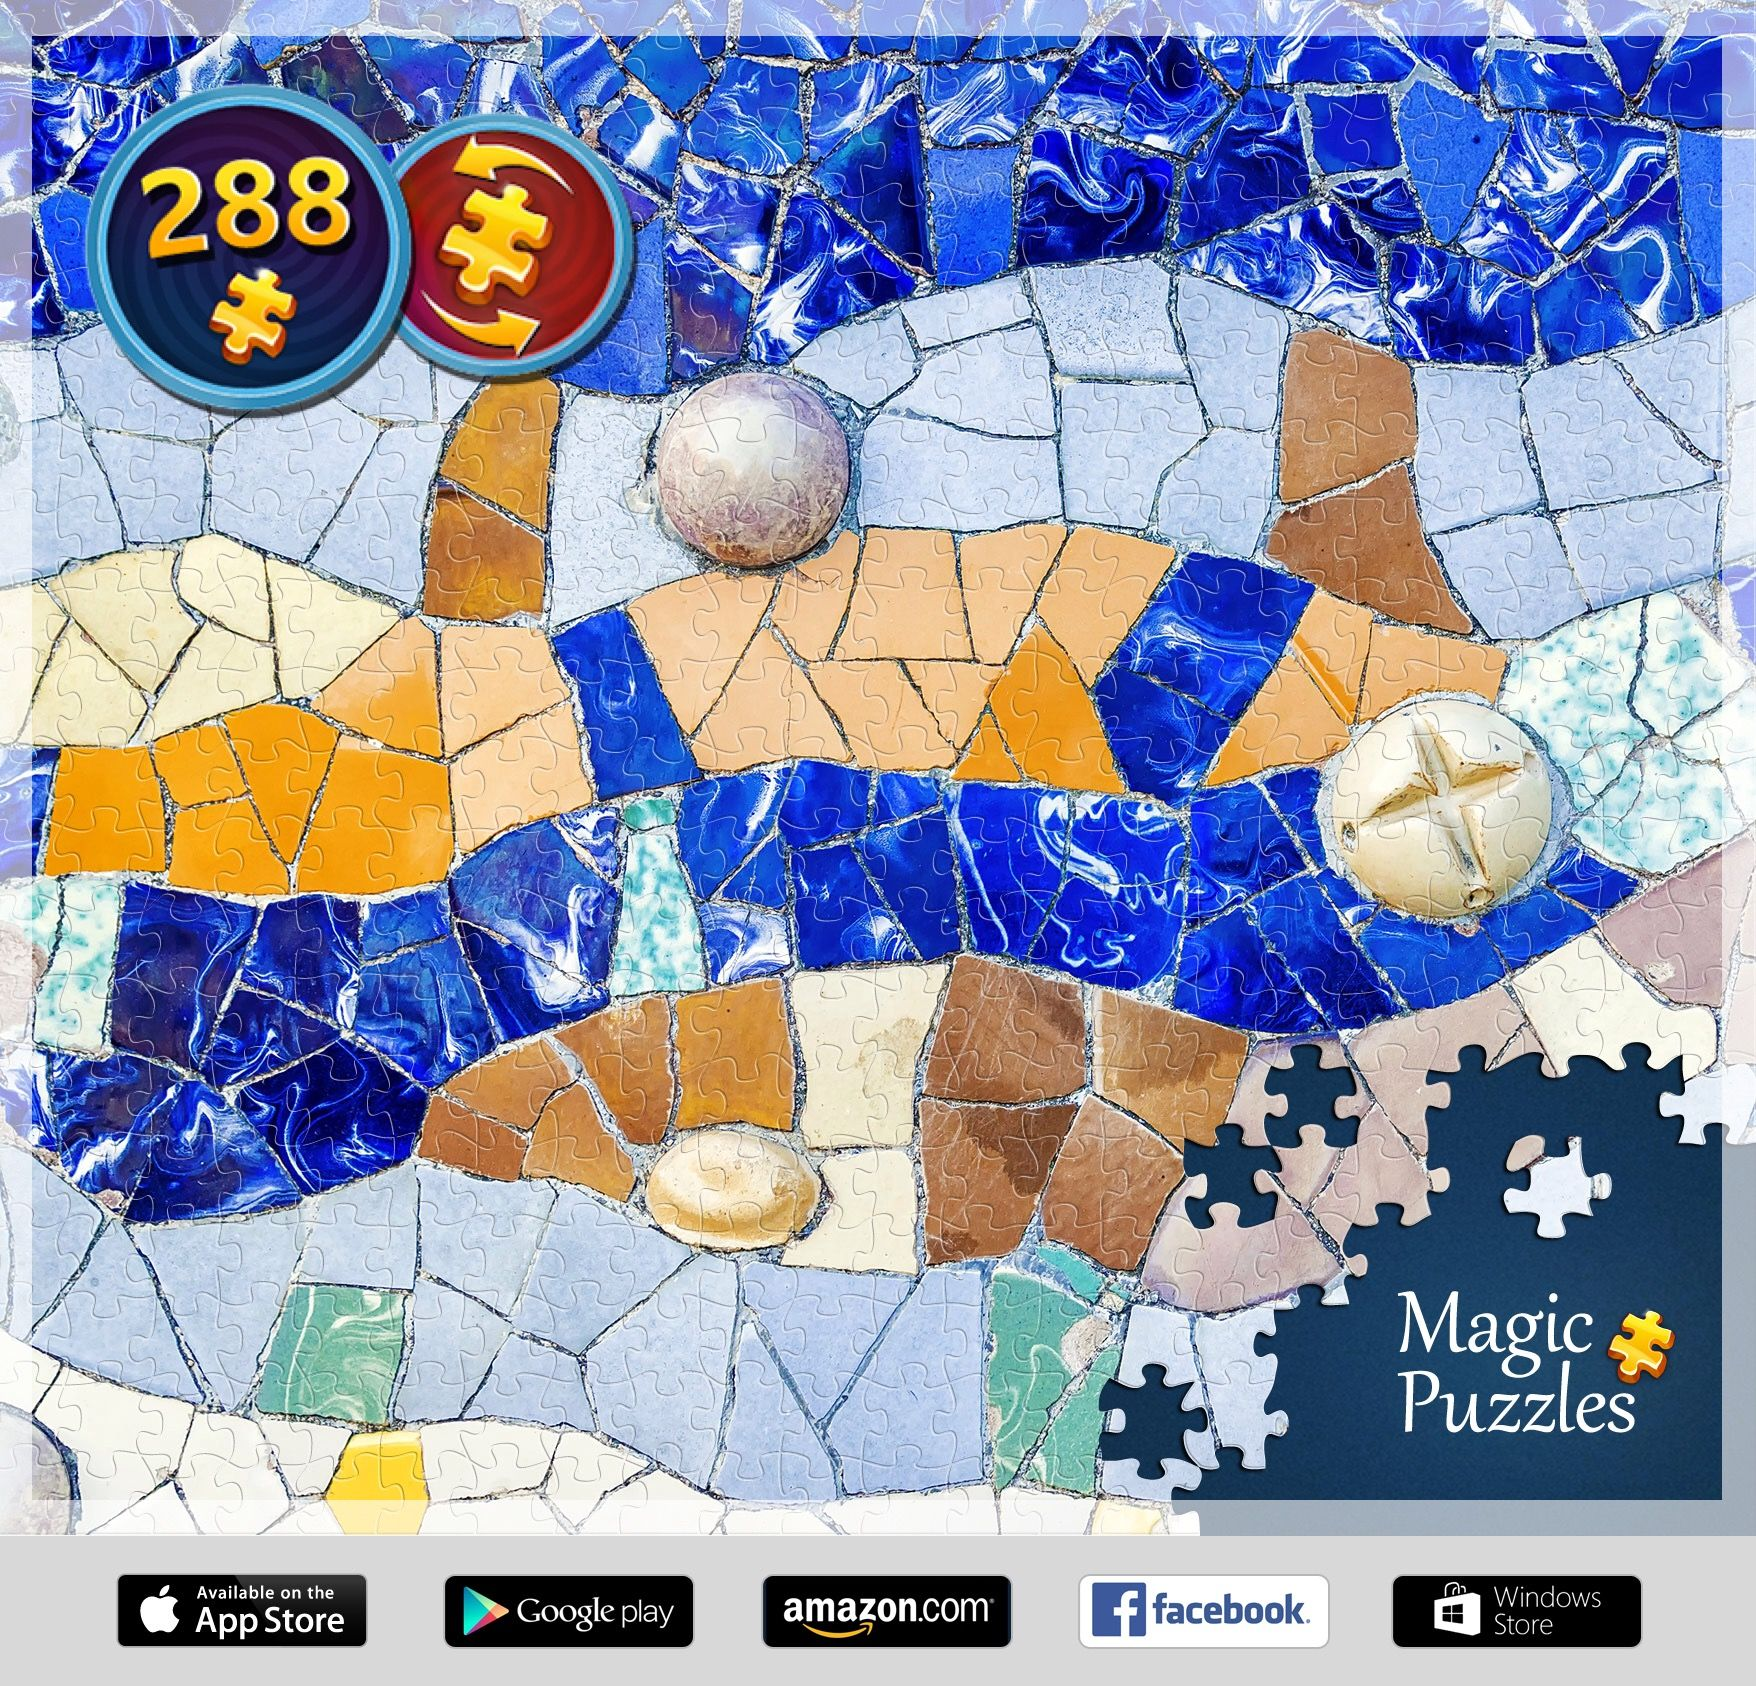 I've just solved this puzzle in the Magic Jigsaw Puzzles app